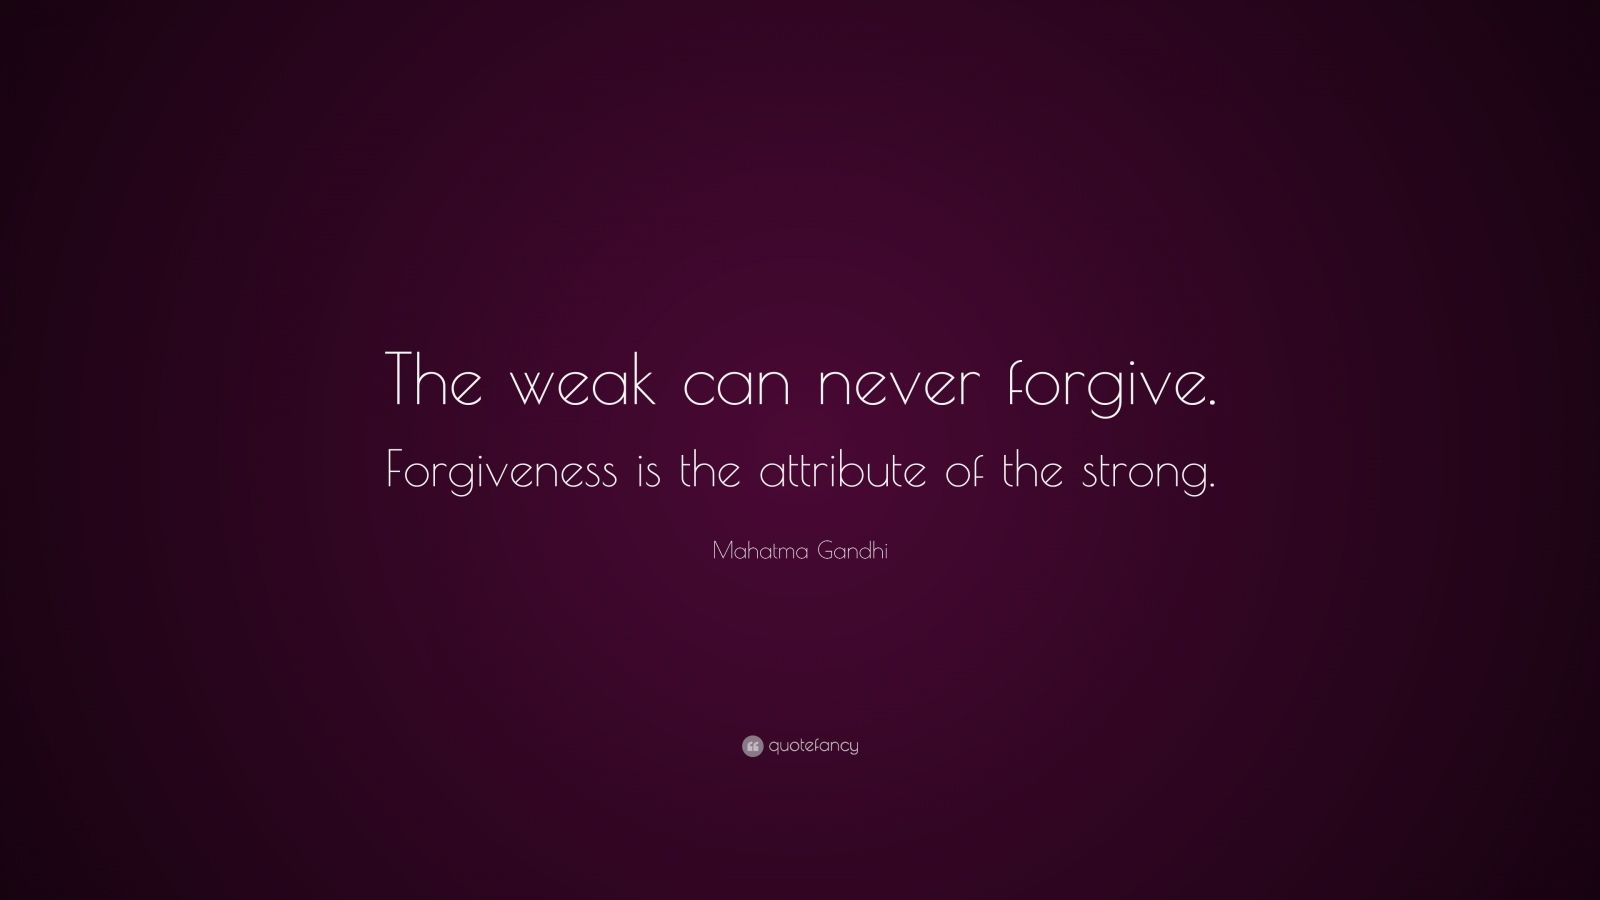 essay on forgiveness is the attribute of the strong